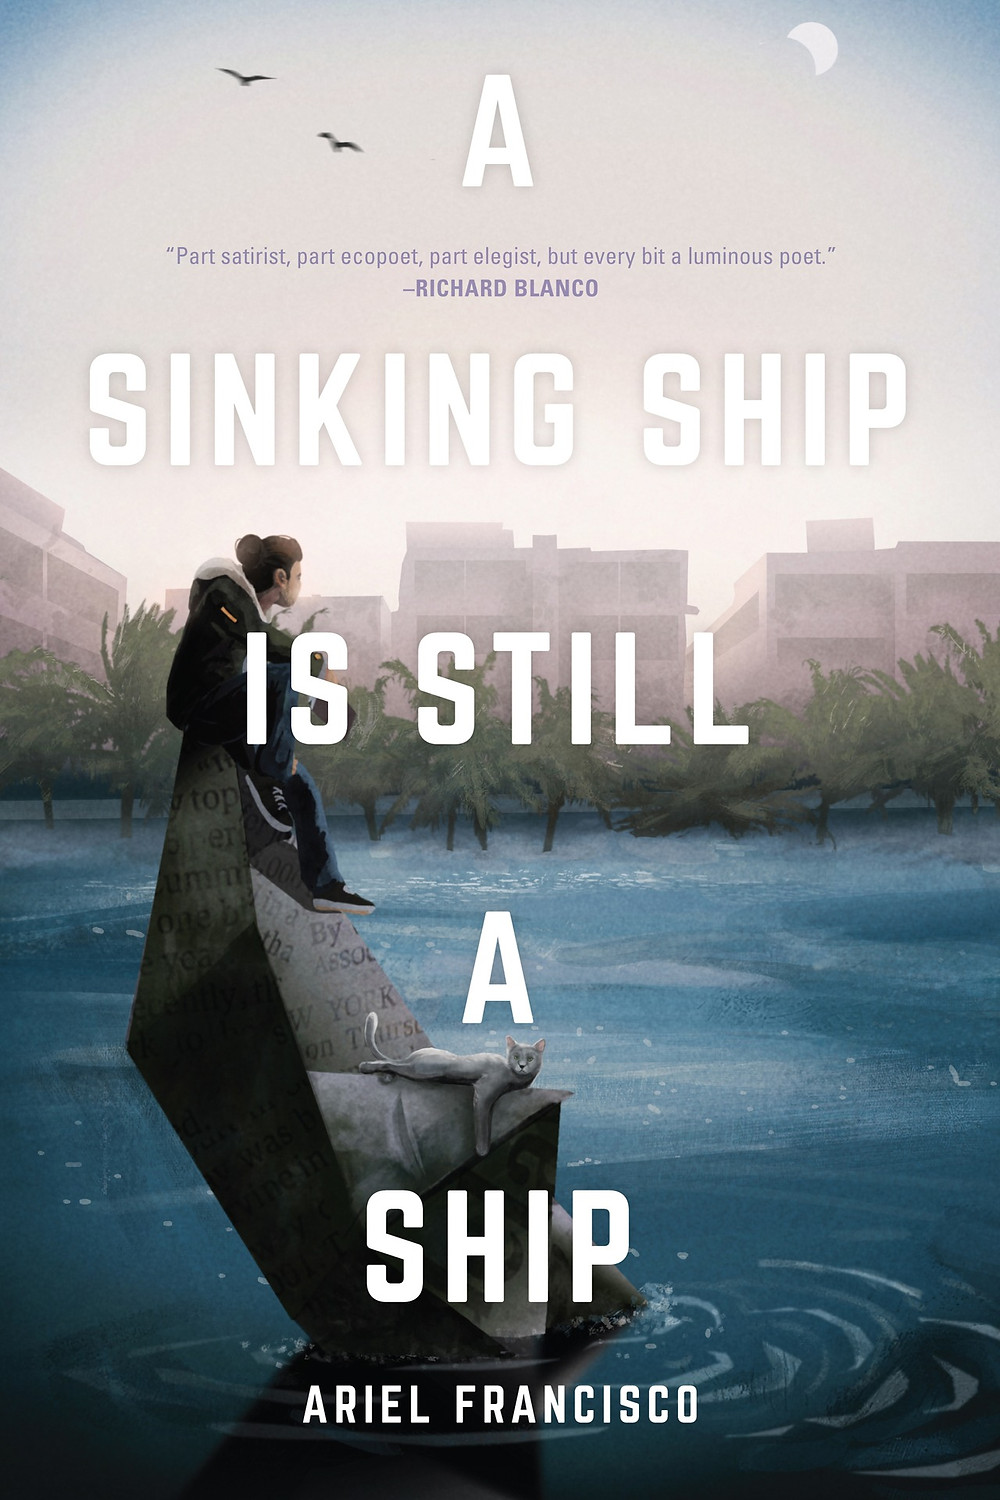 A Sinking Ship is Still a Ship By Ariel Francisco 160 pages. 2020. Burrow Press. The book slut book reviews, thebookslut poetry reviews, Publisher: Burrow Press Published Date: April 21, 2020 Pages: 160 Dimensions: 6.0 X 0.4 X 9.0 inches | 0.5 pounds Language: English Type: Paperback ISBN: 9781941681626 BISAC Categories: Caribbean & Latin American